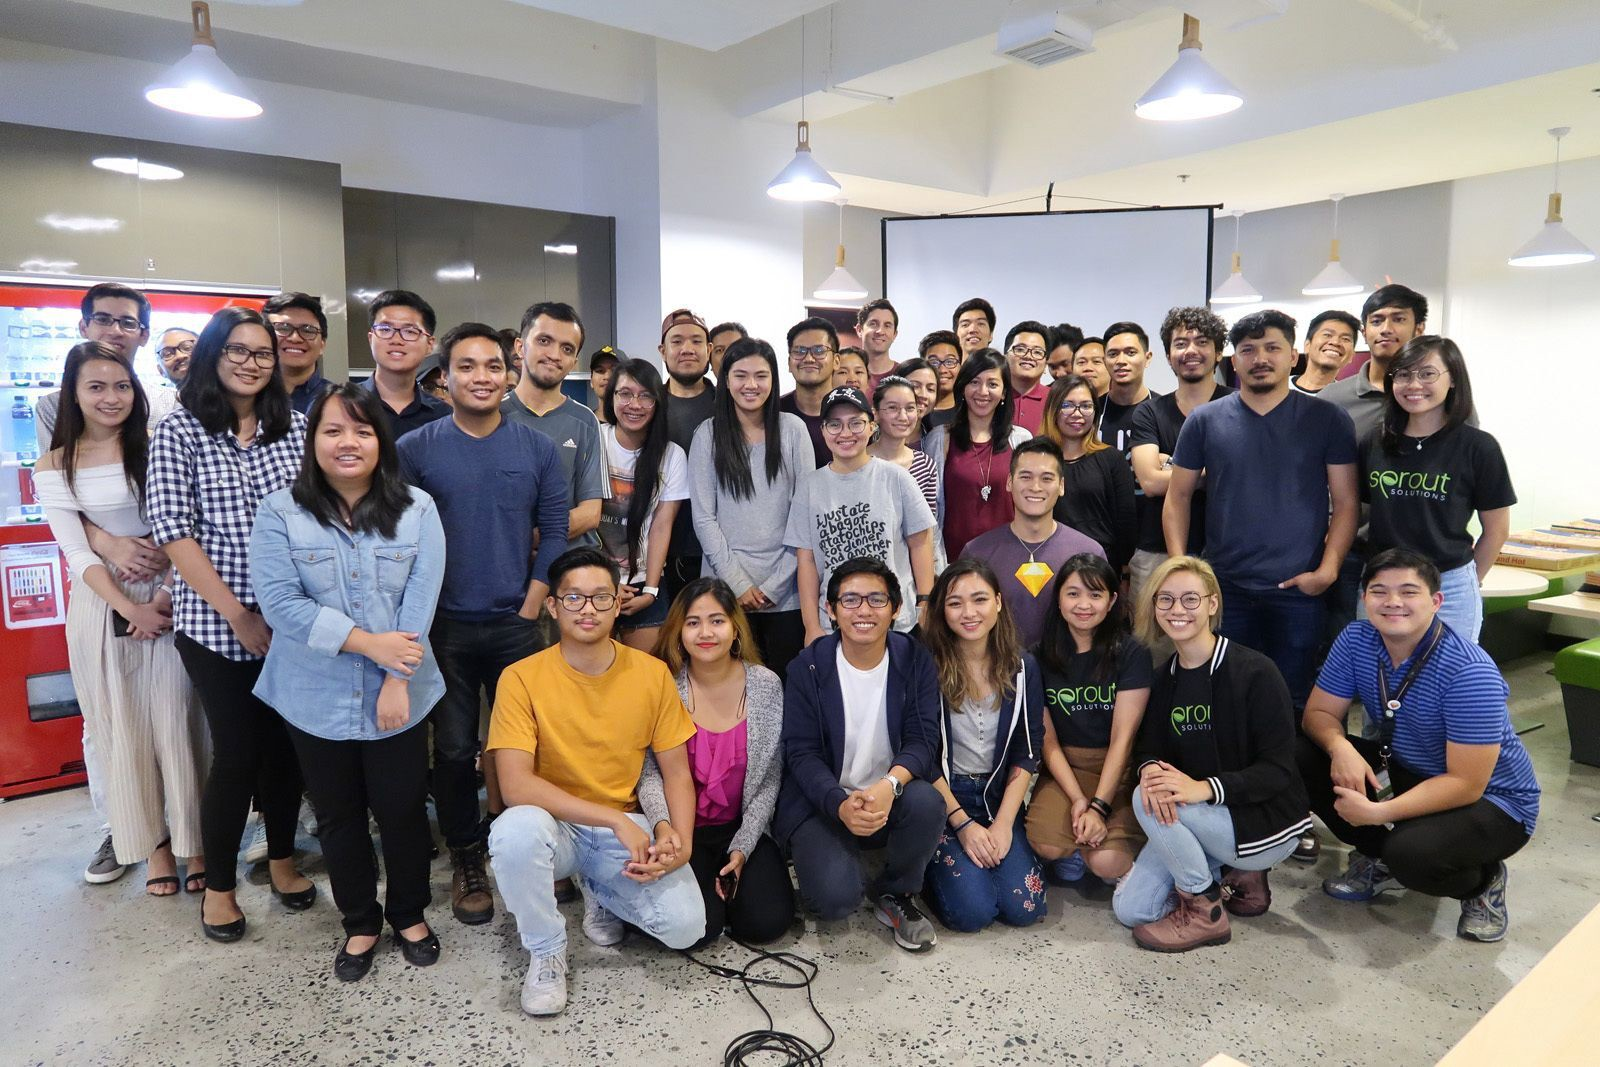 A photo from a meetup in Manilla.